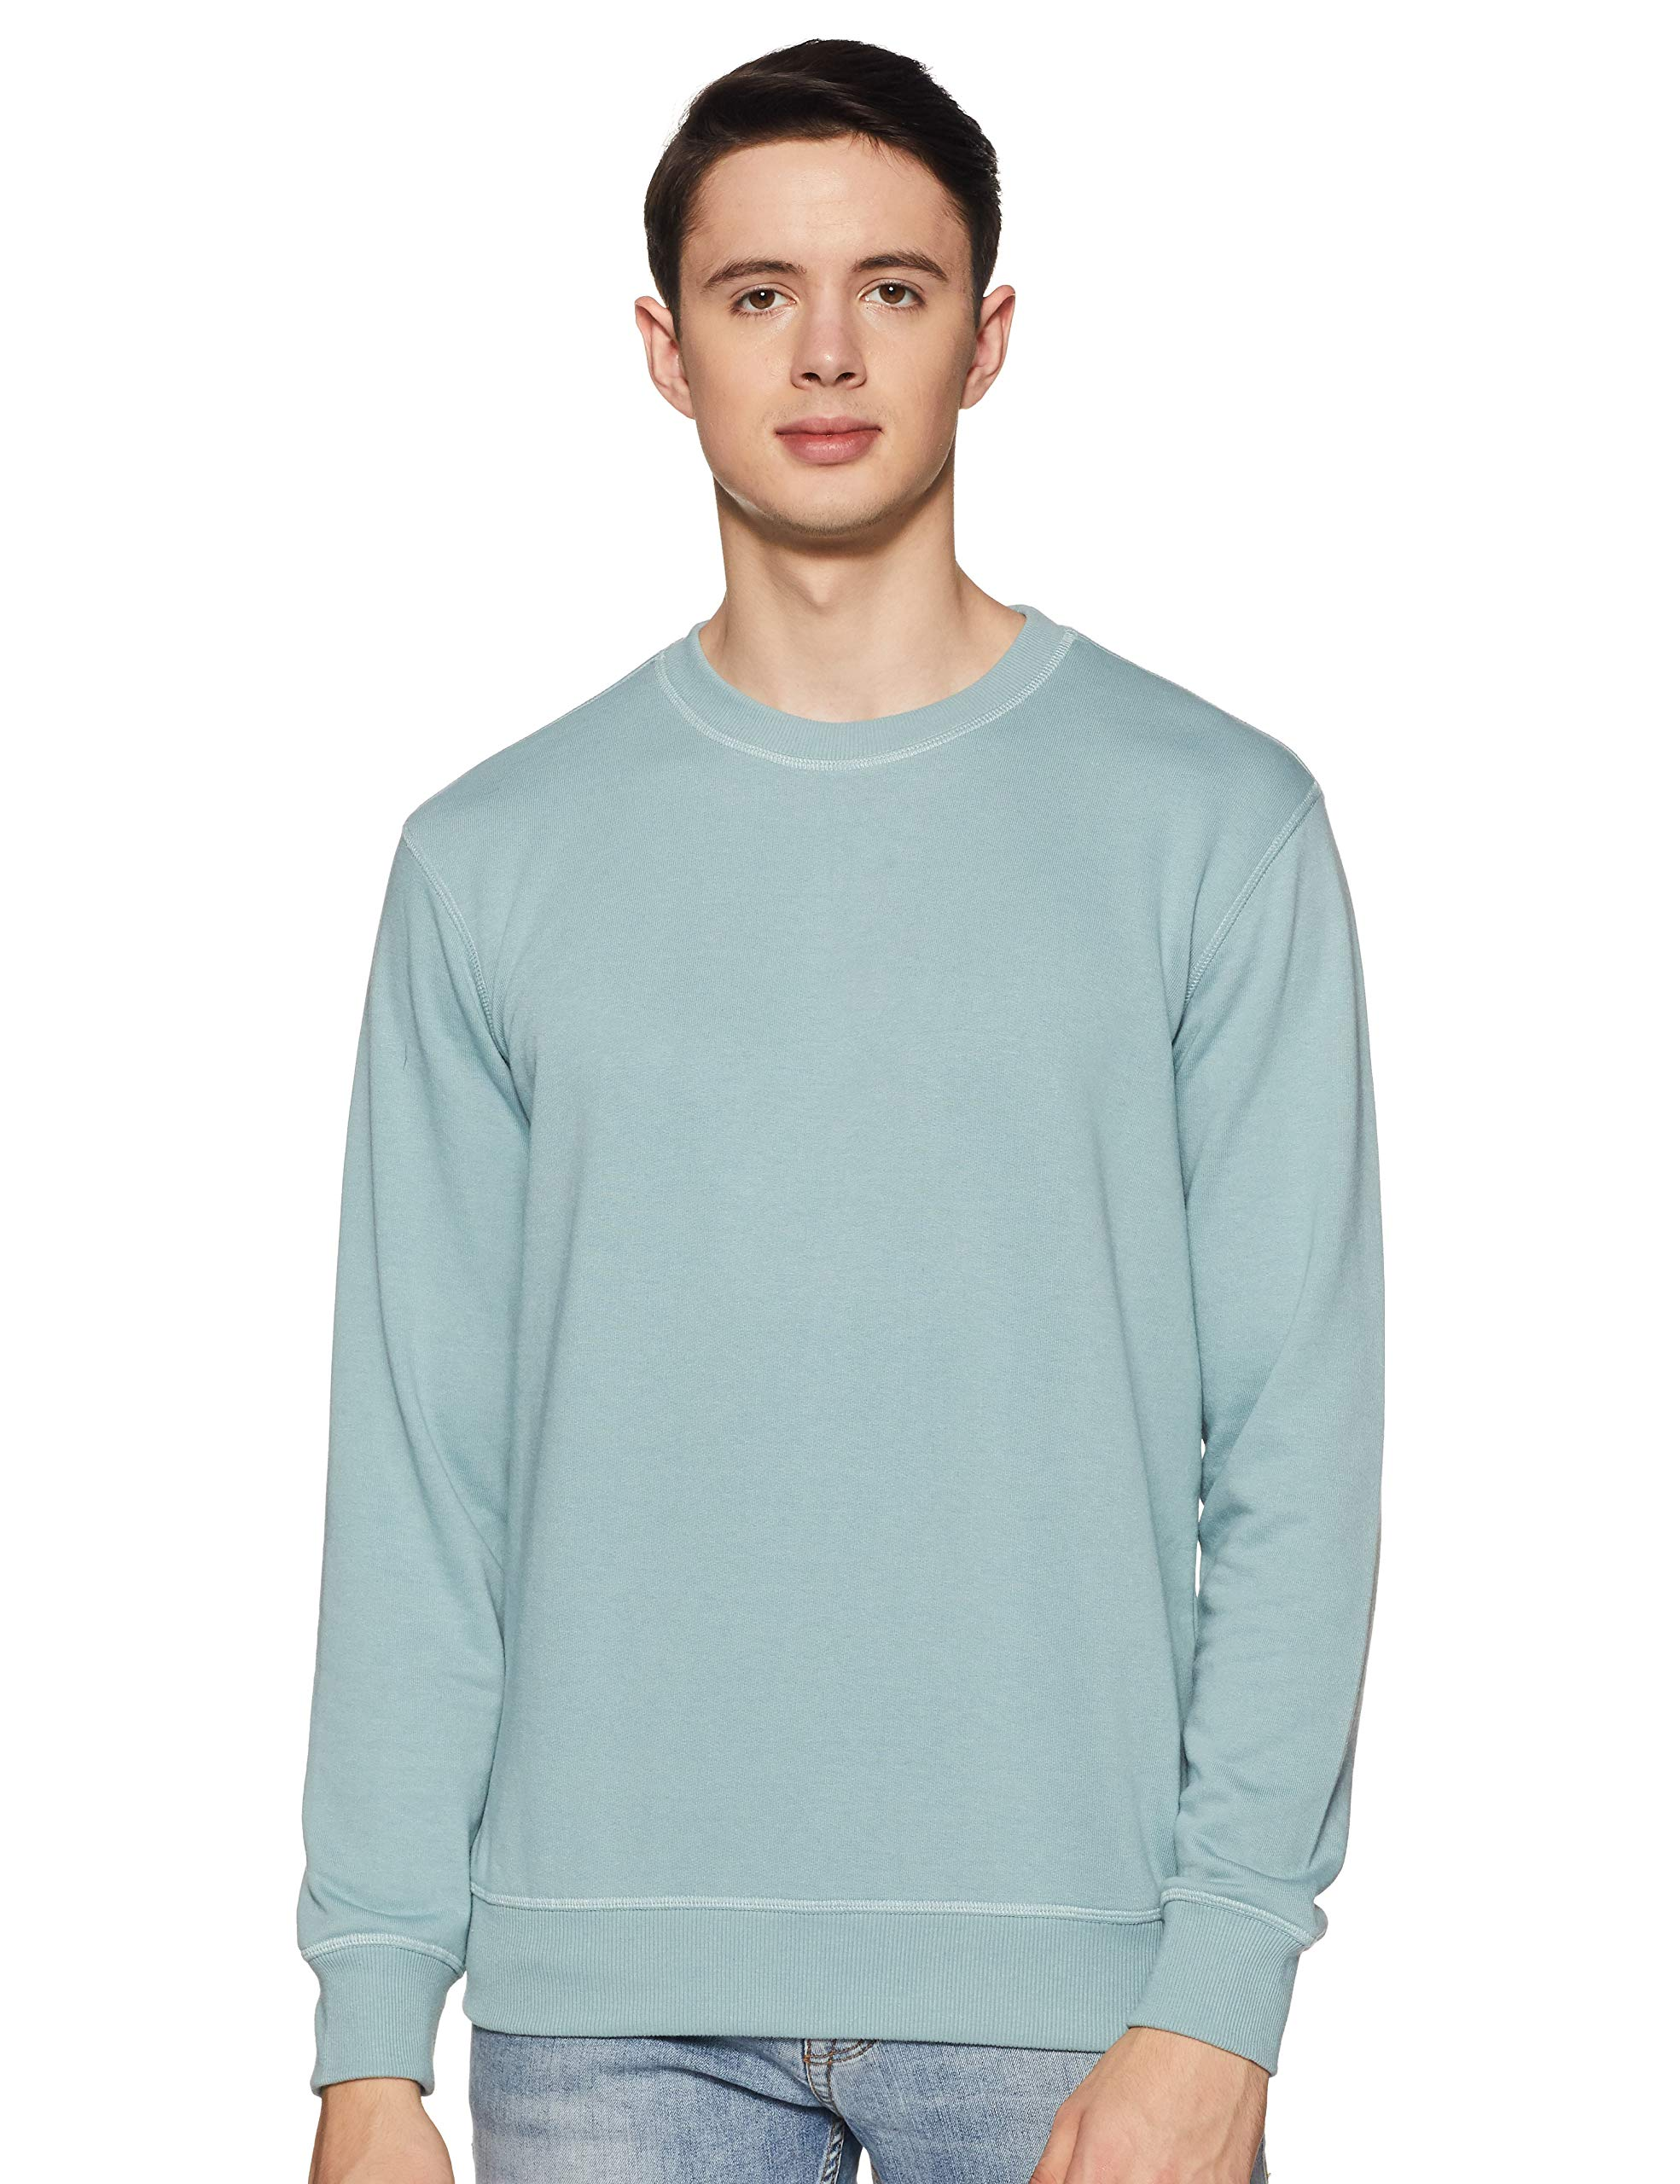 Amazon Brand - Symbol Men's Regular fit Solid Sweatshirt (AW18MNSSW01_Blue Haze_M) (B07TQM98GF) Amazon Price History, Amazon Price Tracker